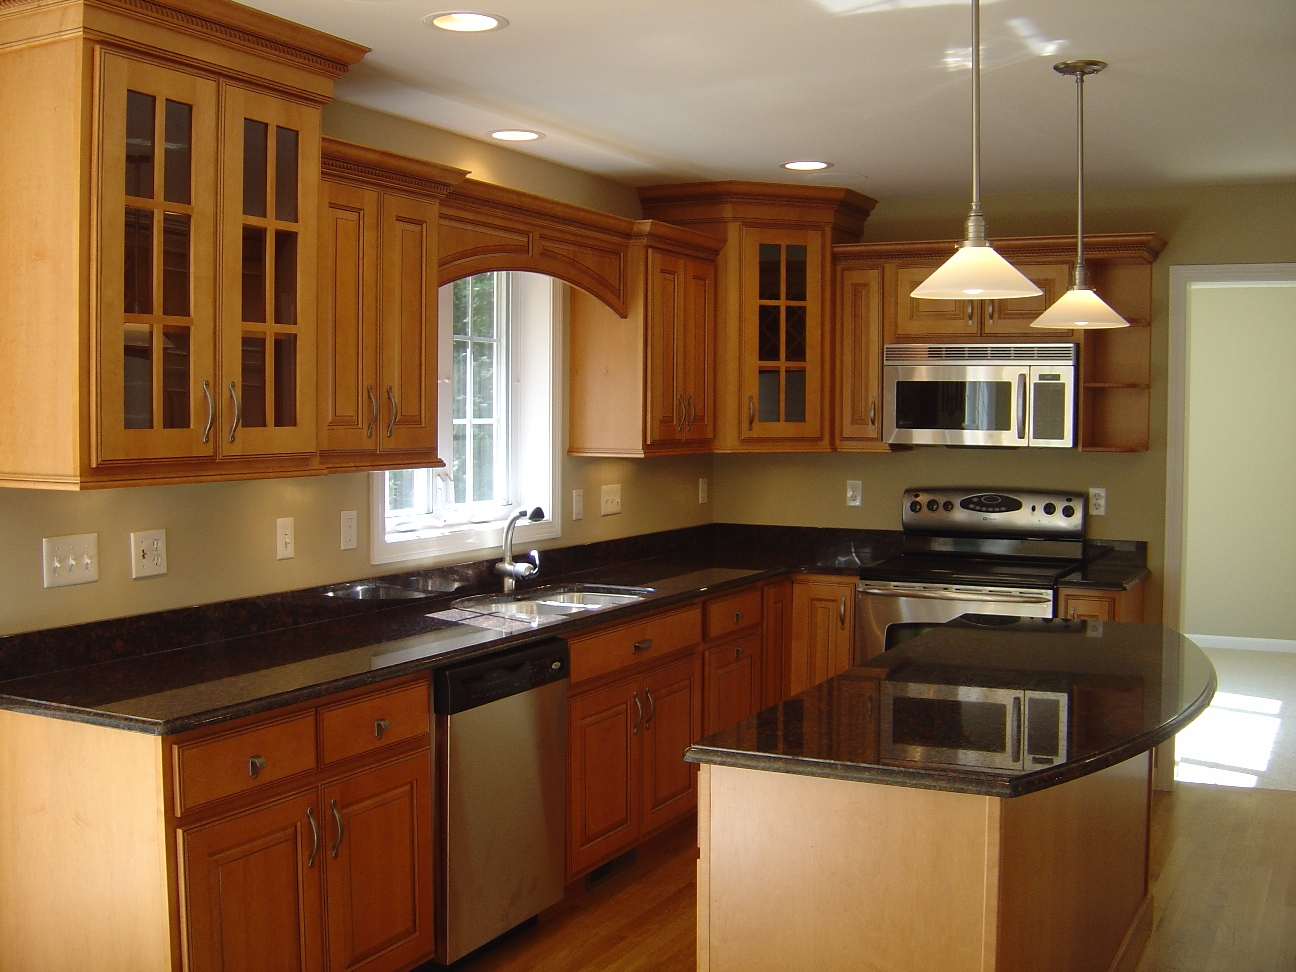 Kitchen designs photos find kitchen designs for Kitchen remodeling ideas pics